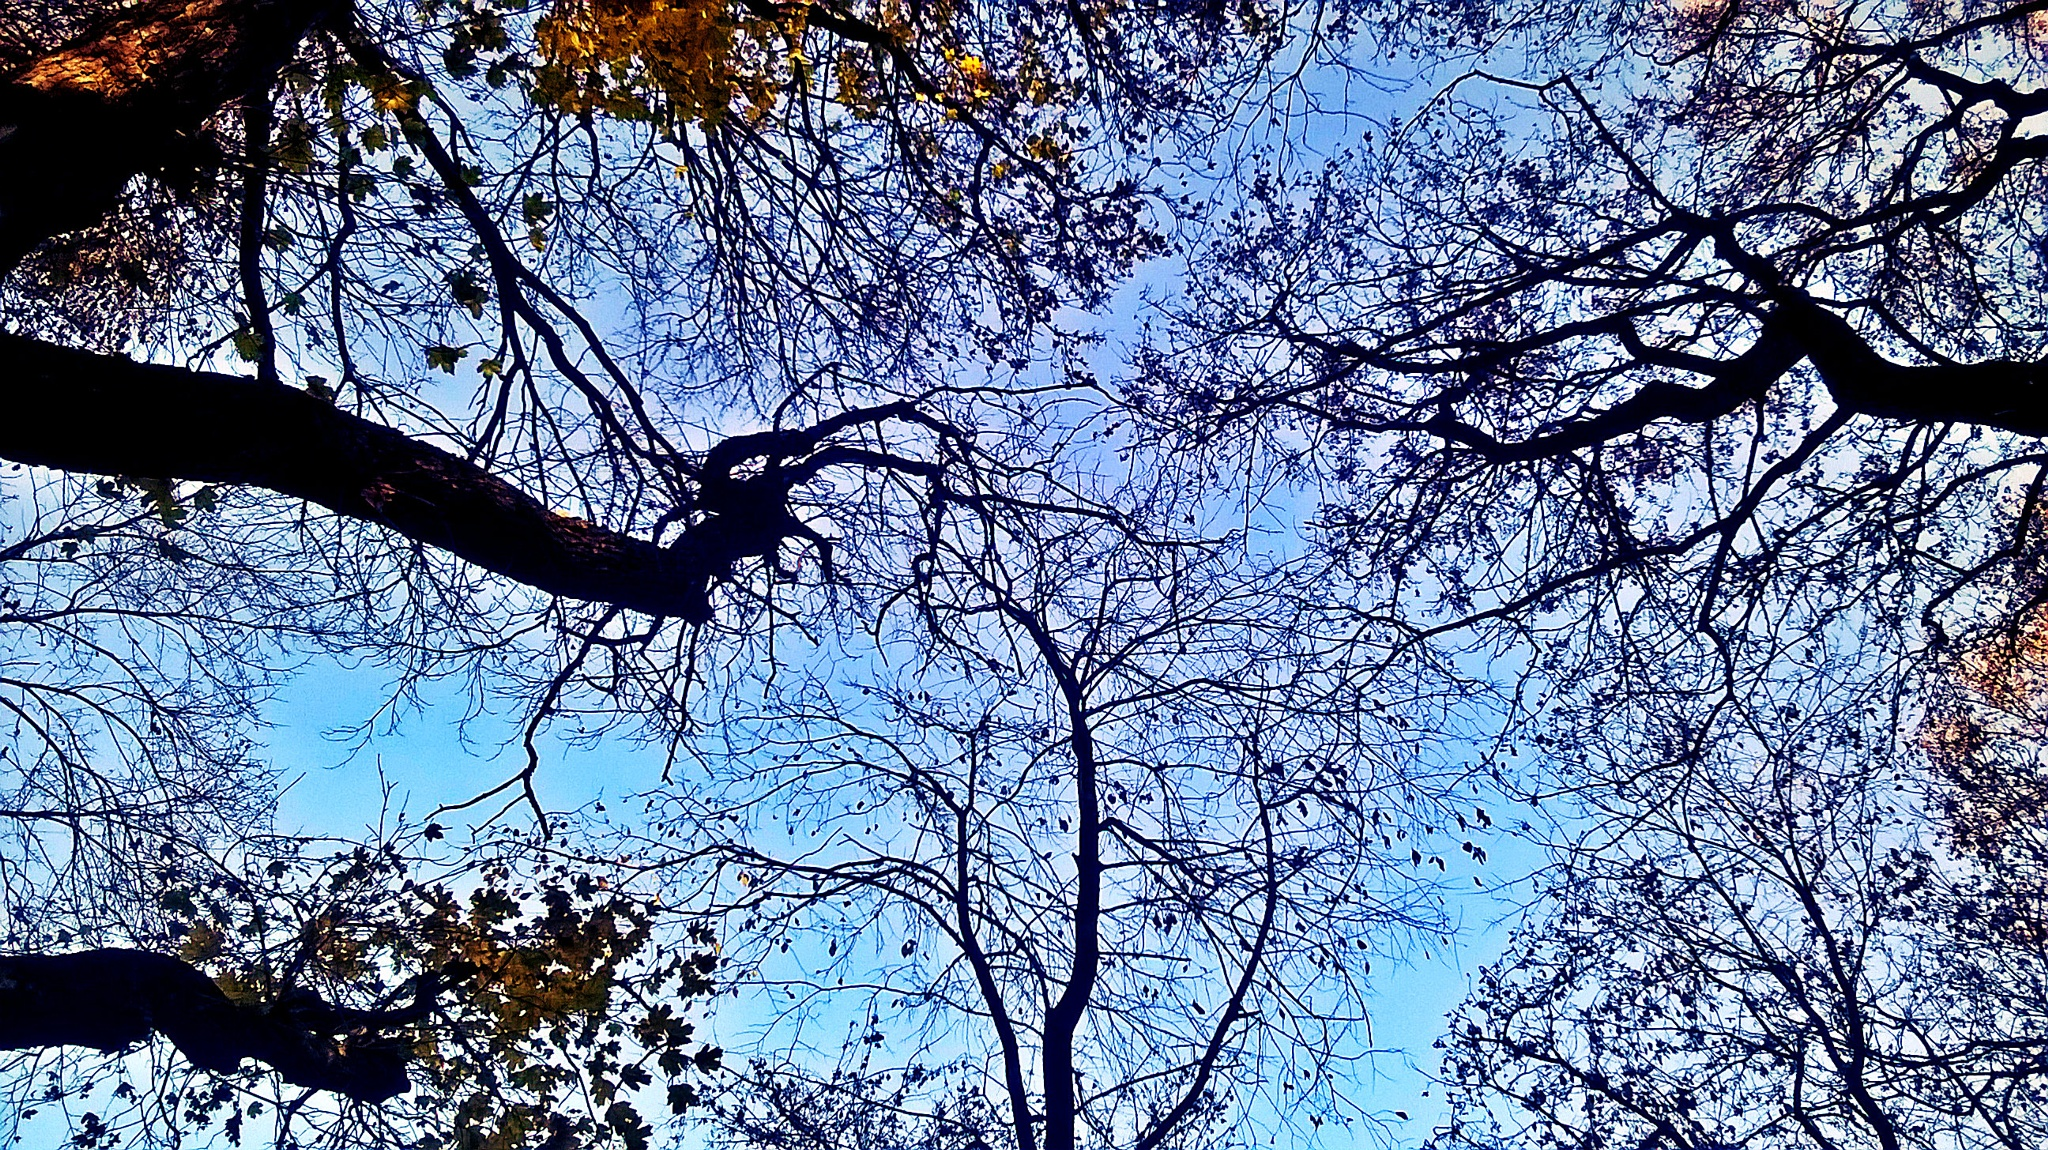 Trees in autumn by Autumn Leaves